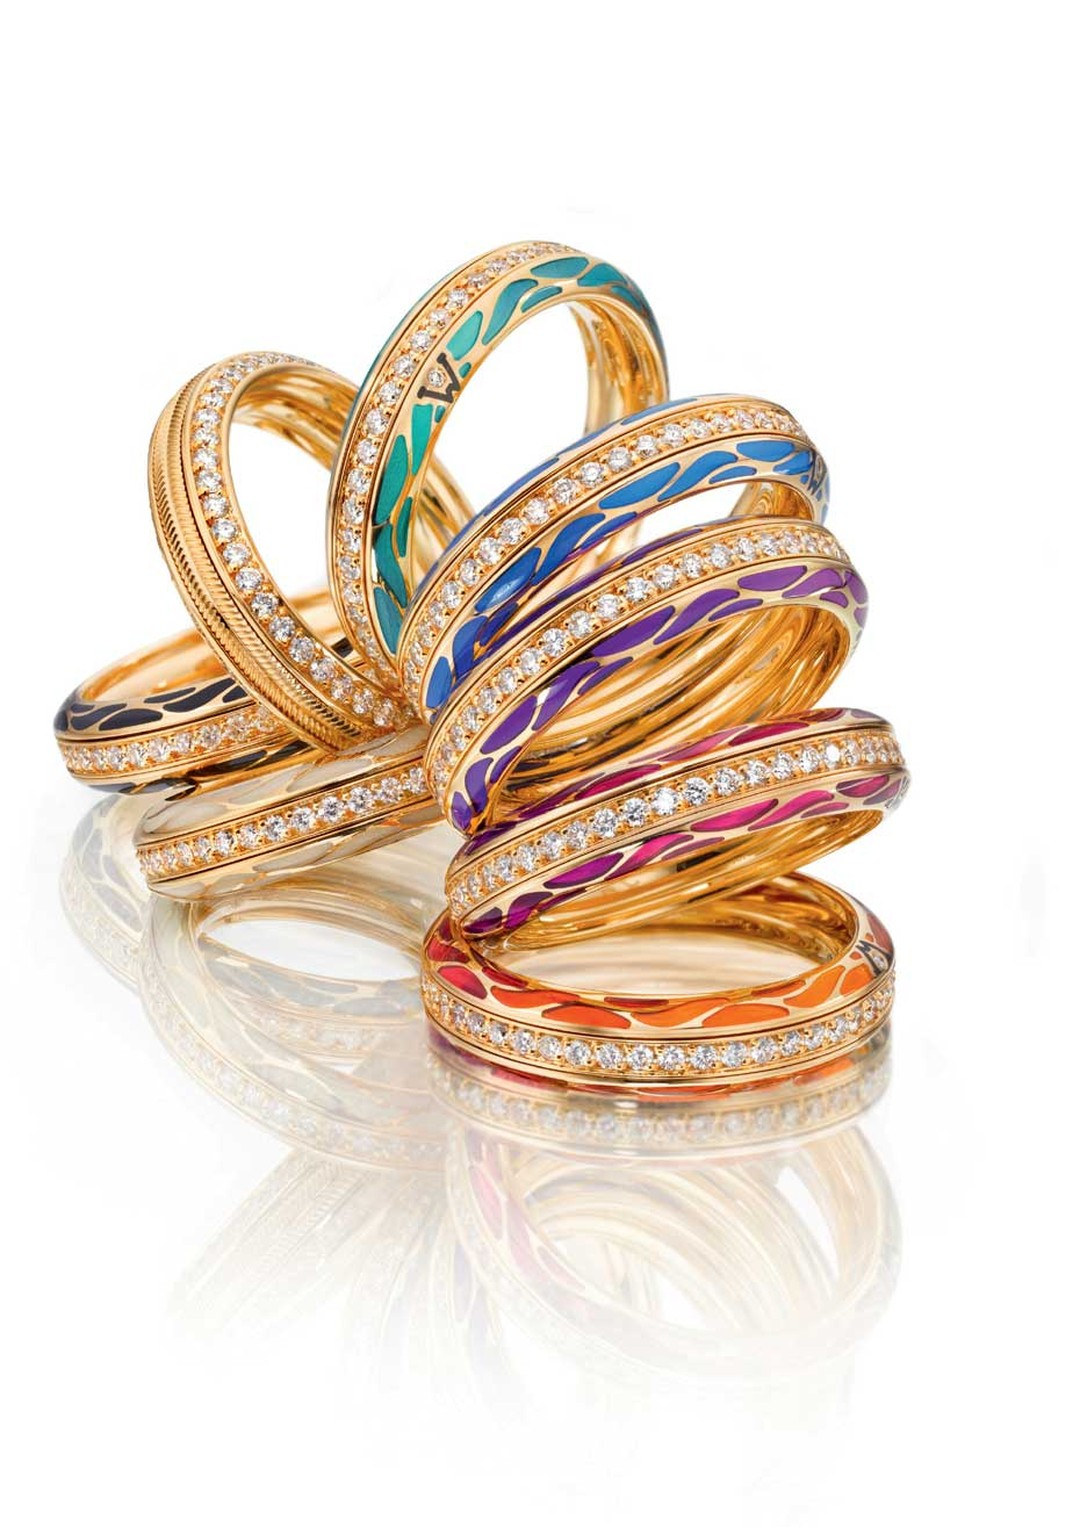 Wellendorff Genuine Delight gold rings with diamonds and coloured enamel.